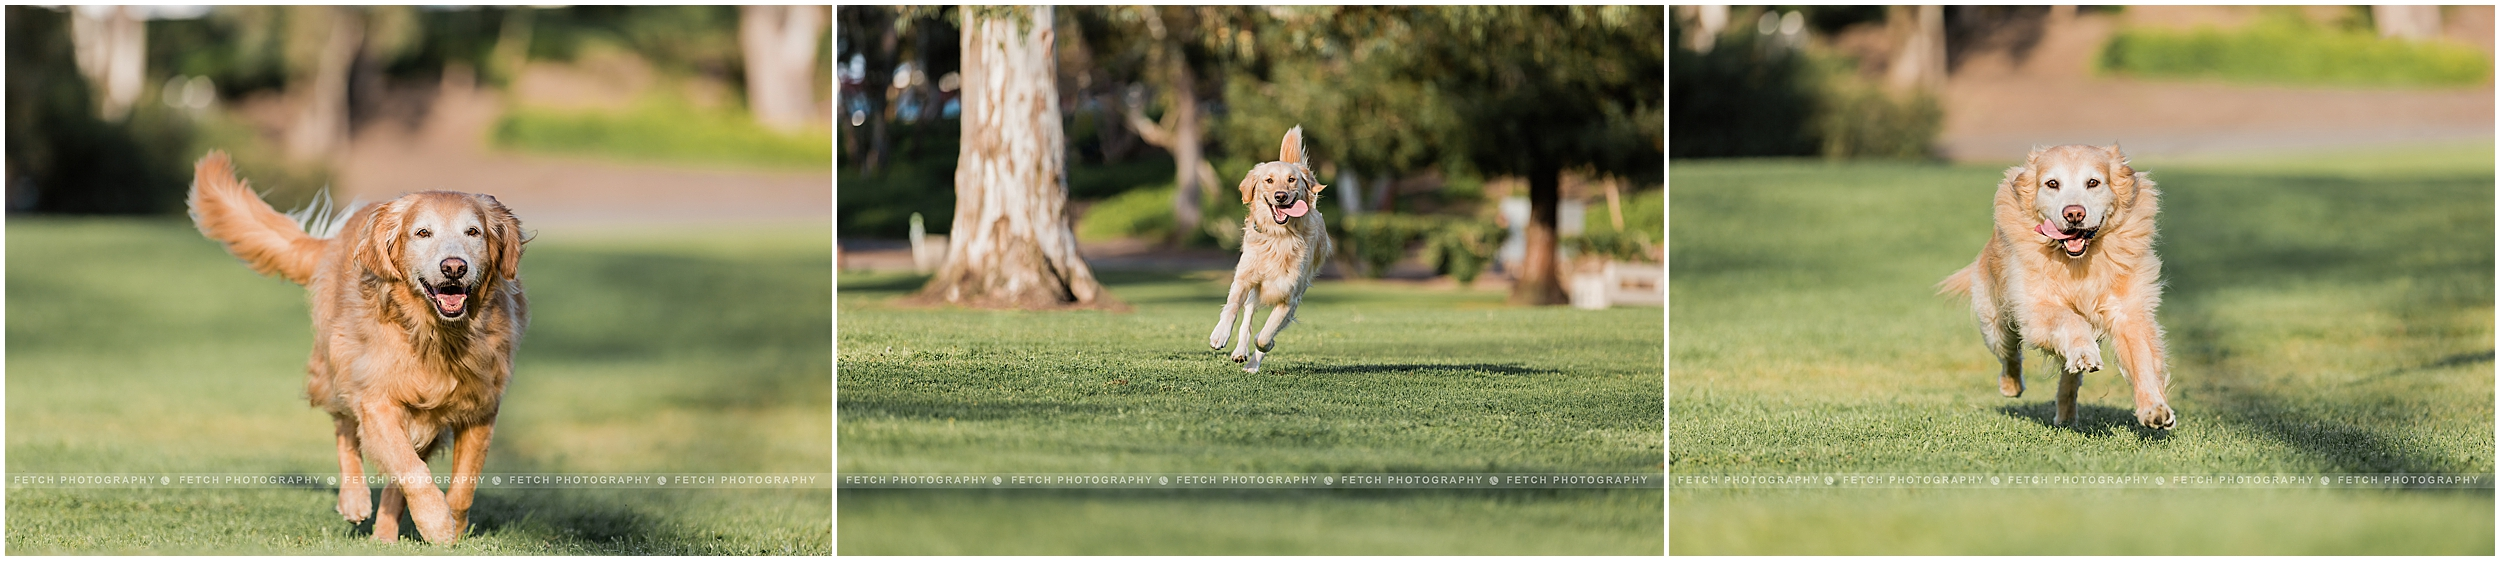 action-dog-photography